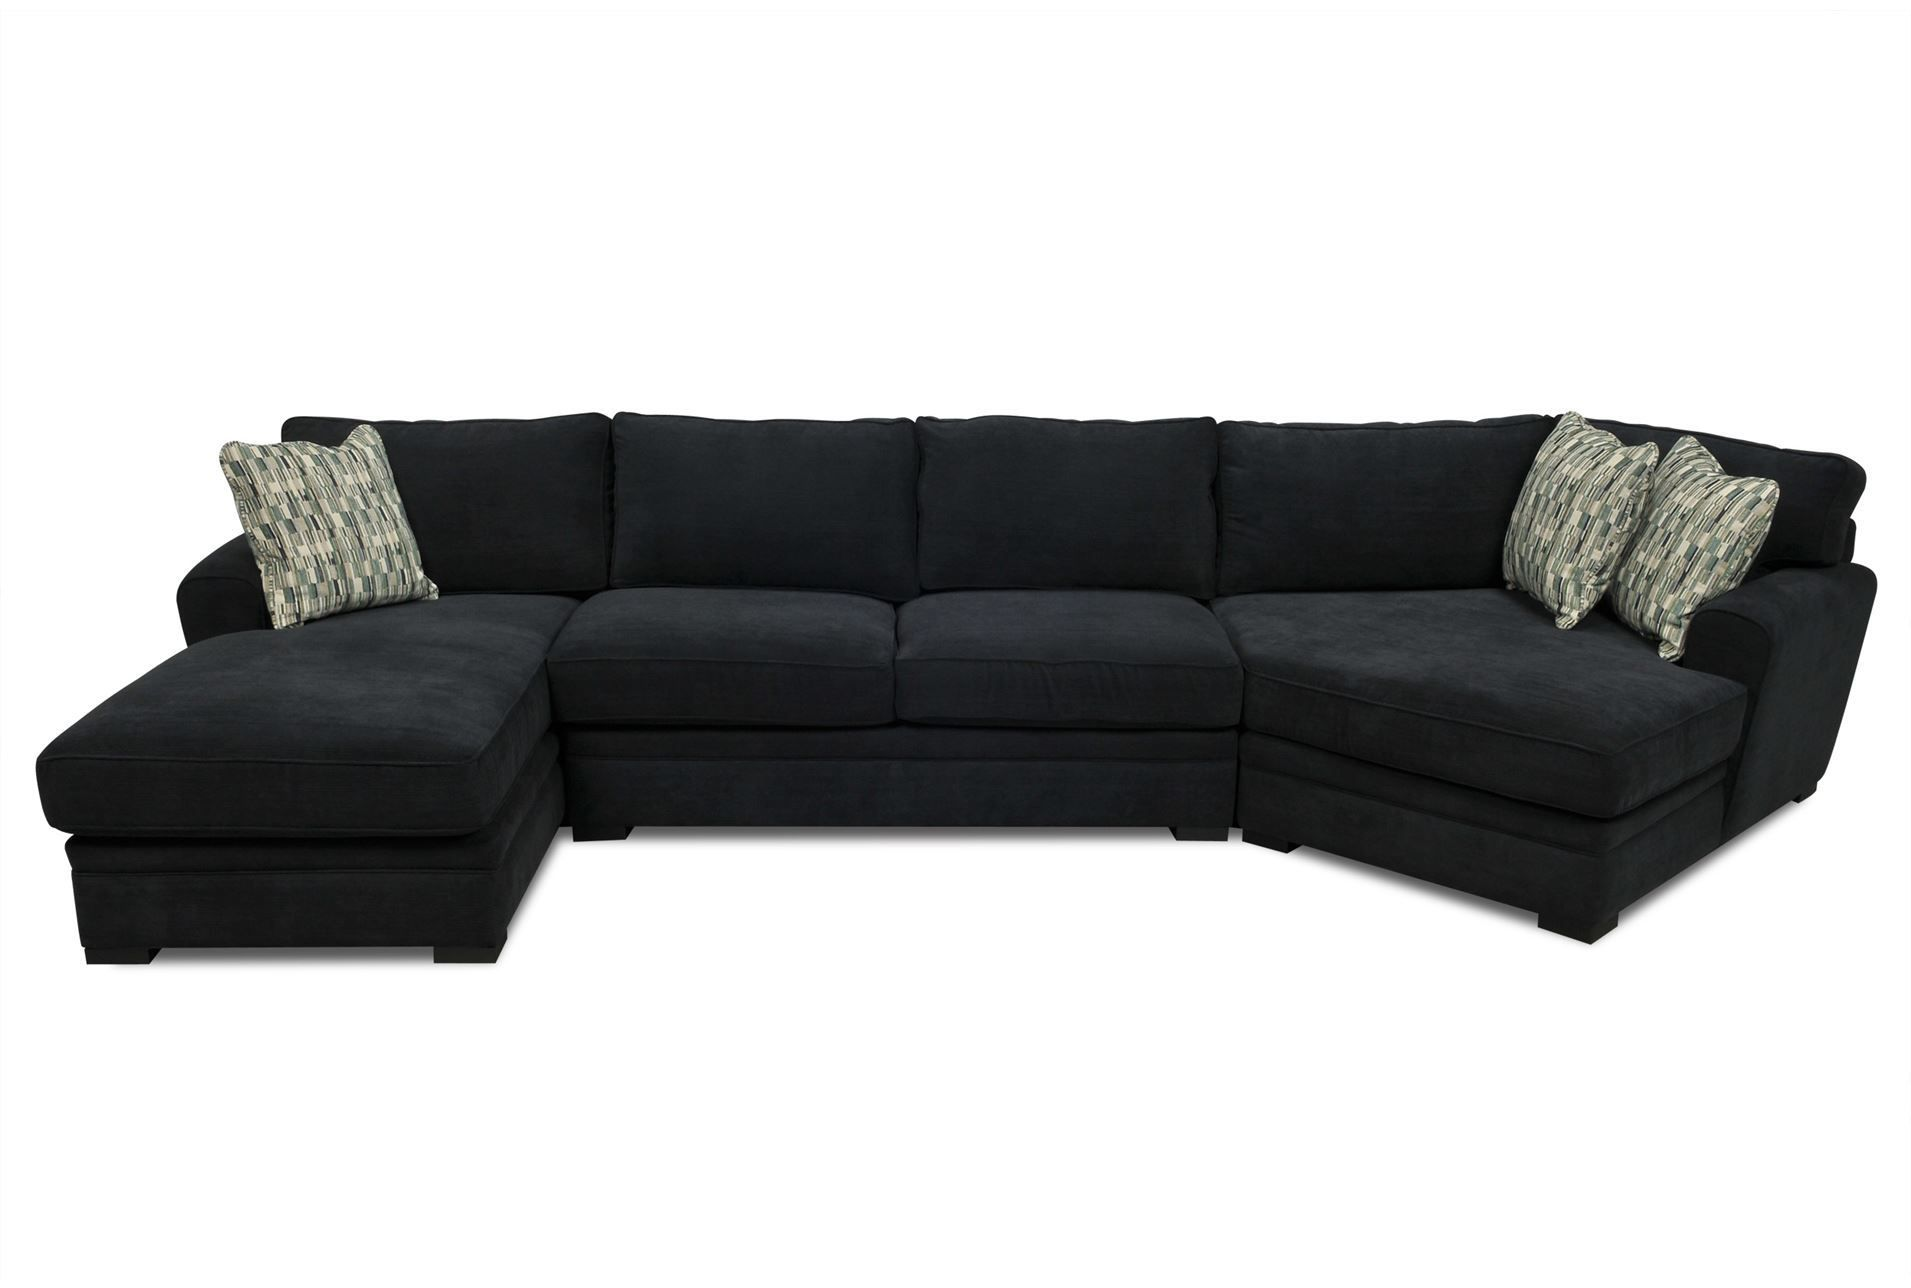 Nice Black Suede Couch Best Black Suede Couch 91 For Modern Sofa Ideas With Black Sued Sectional Sofa With Chaise Microfiber Sectional Sofa Couch With Chaise